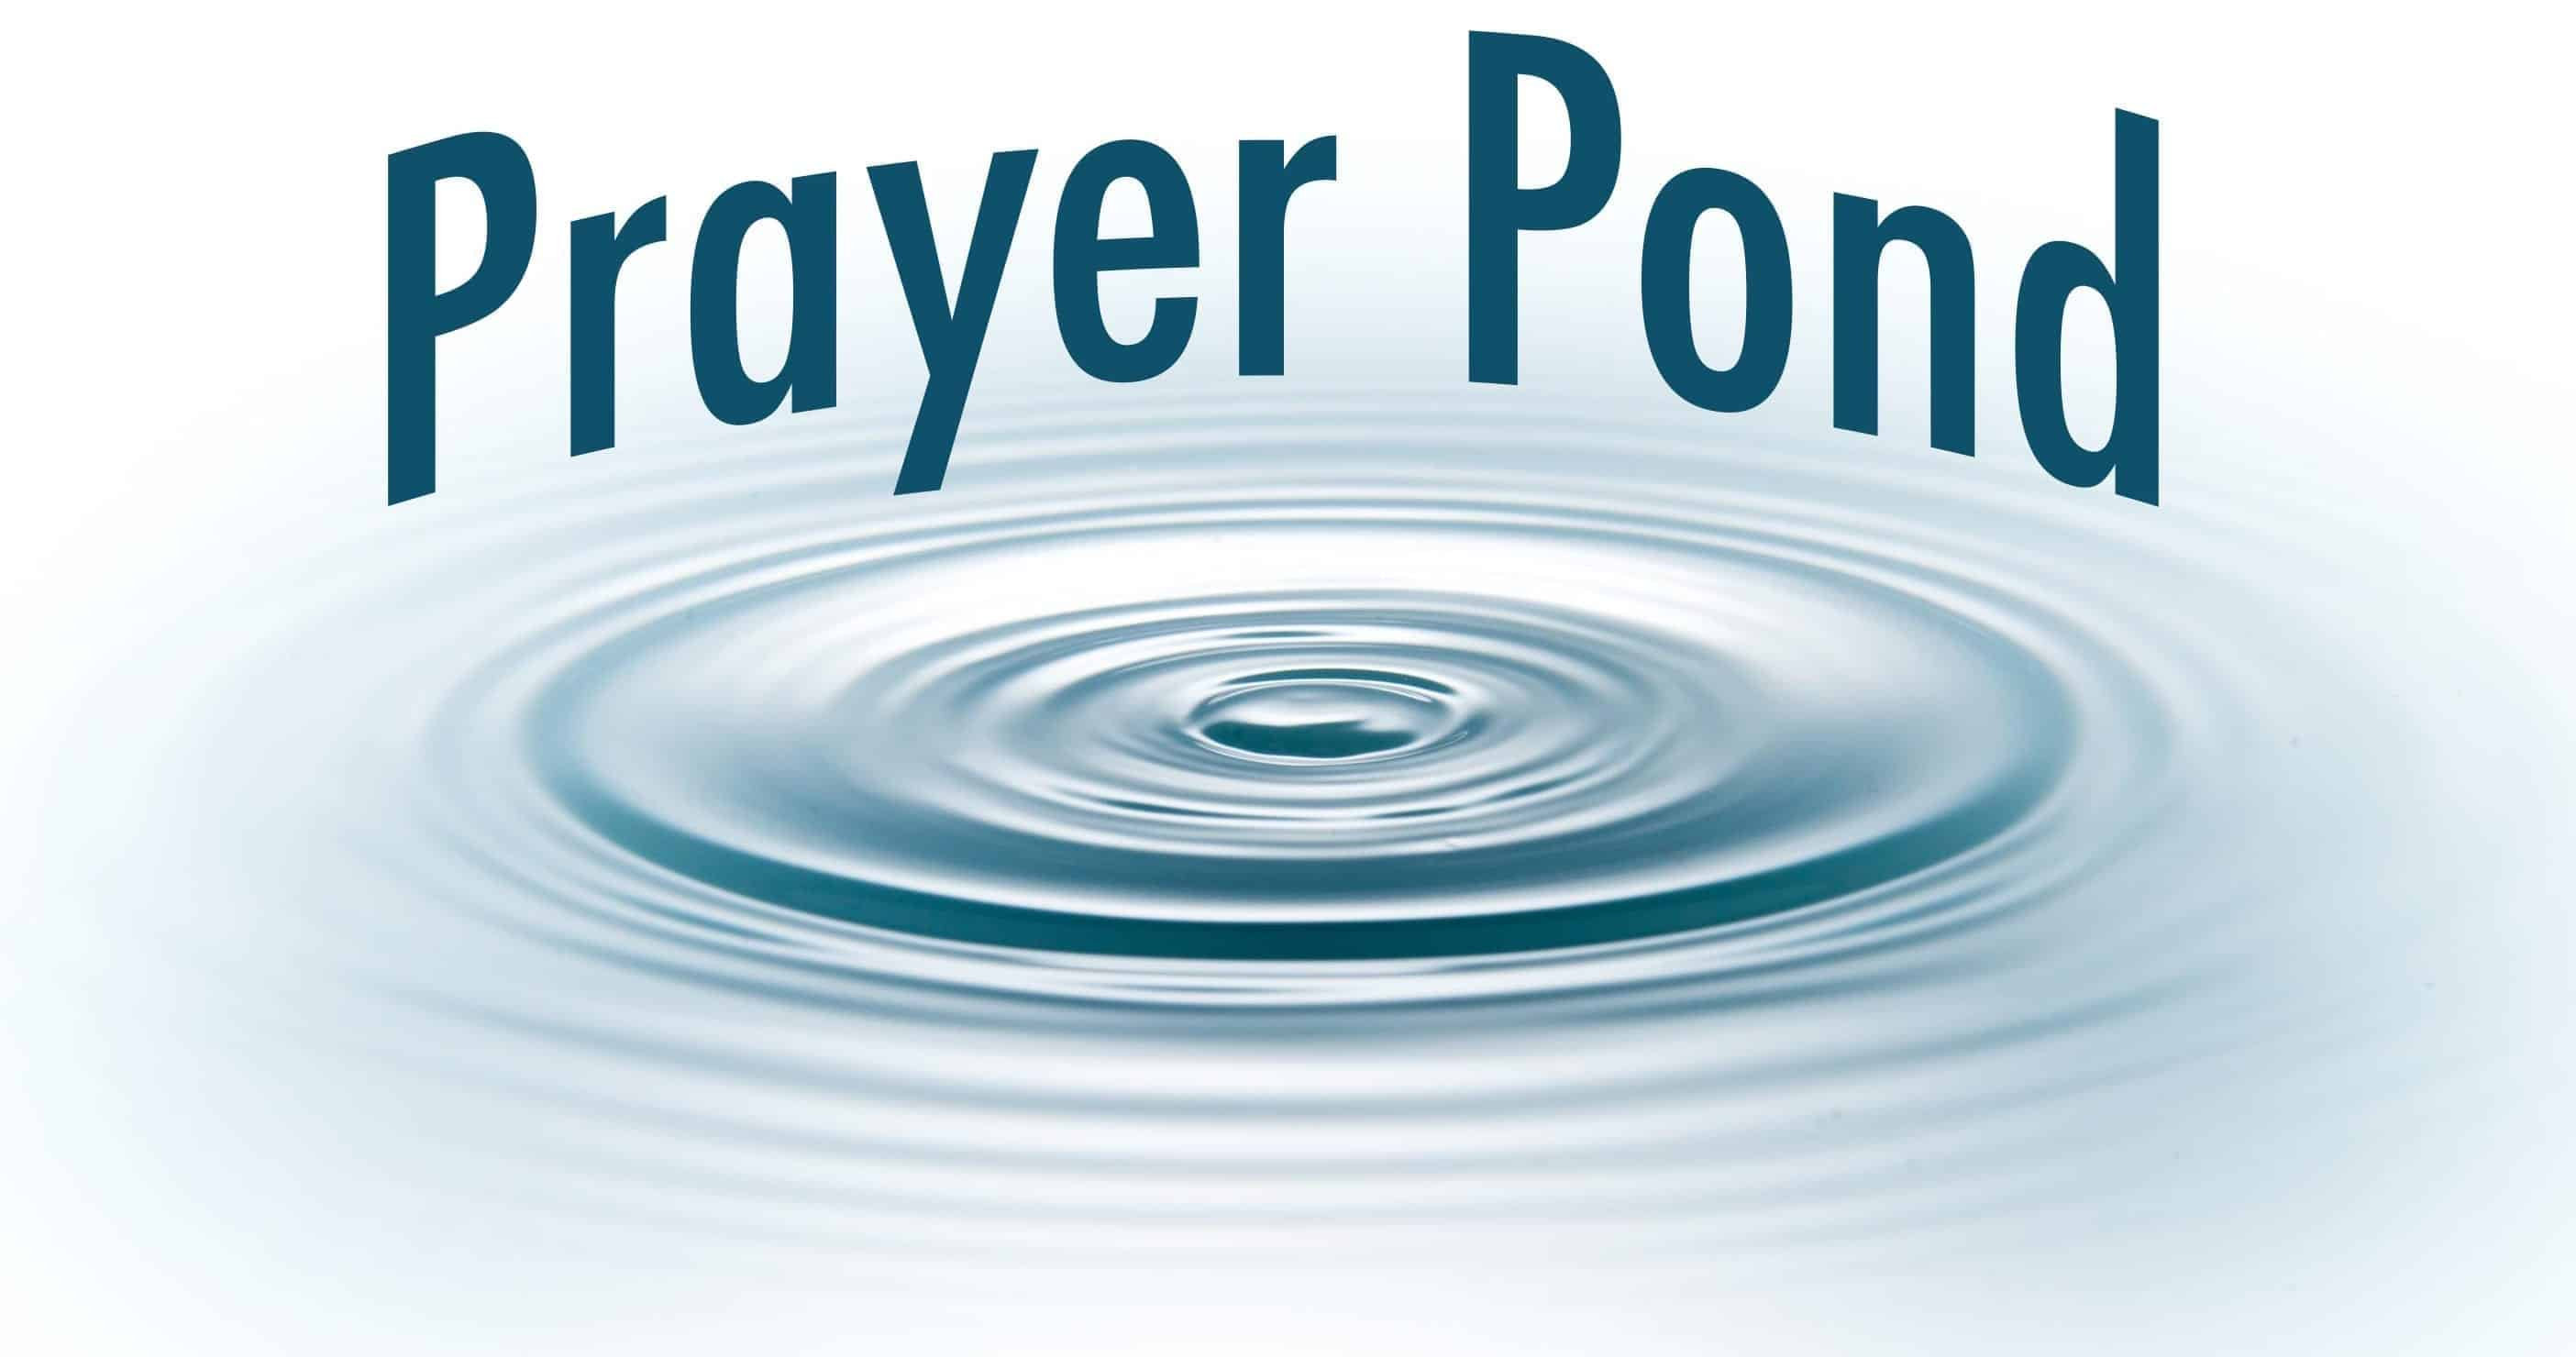 Chronic Joy's Prayer Pond